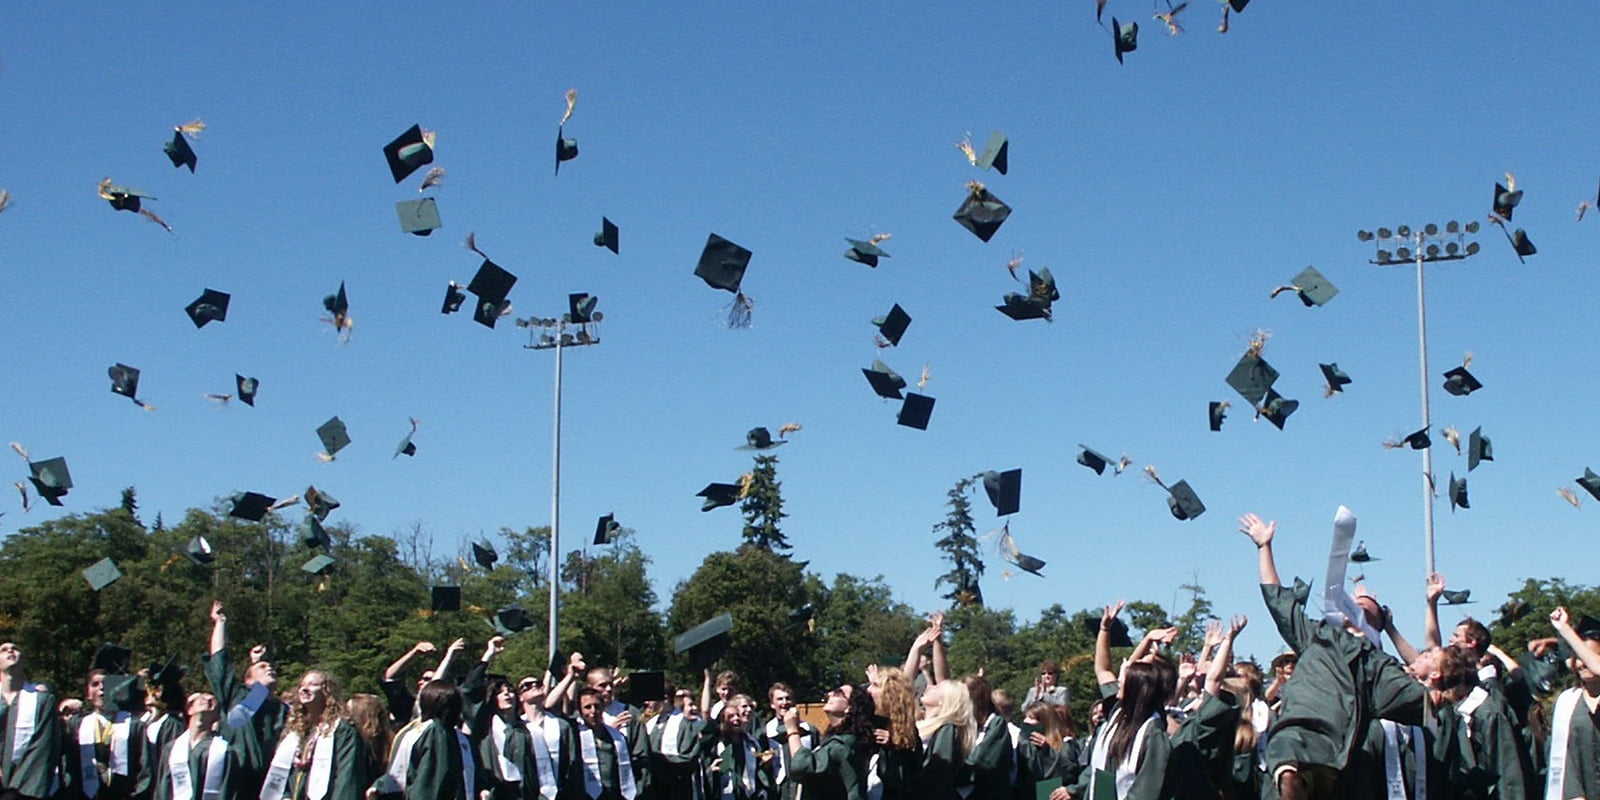 high school students tossing their graduation hats in the air